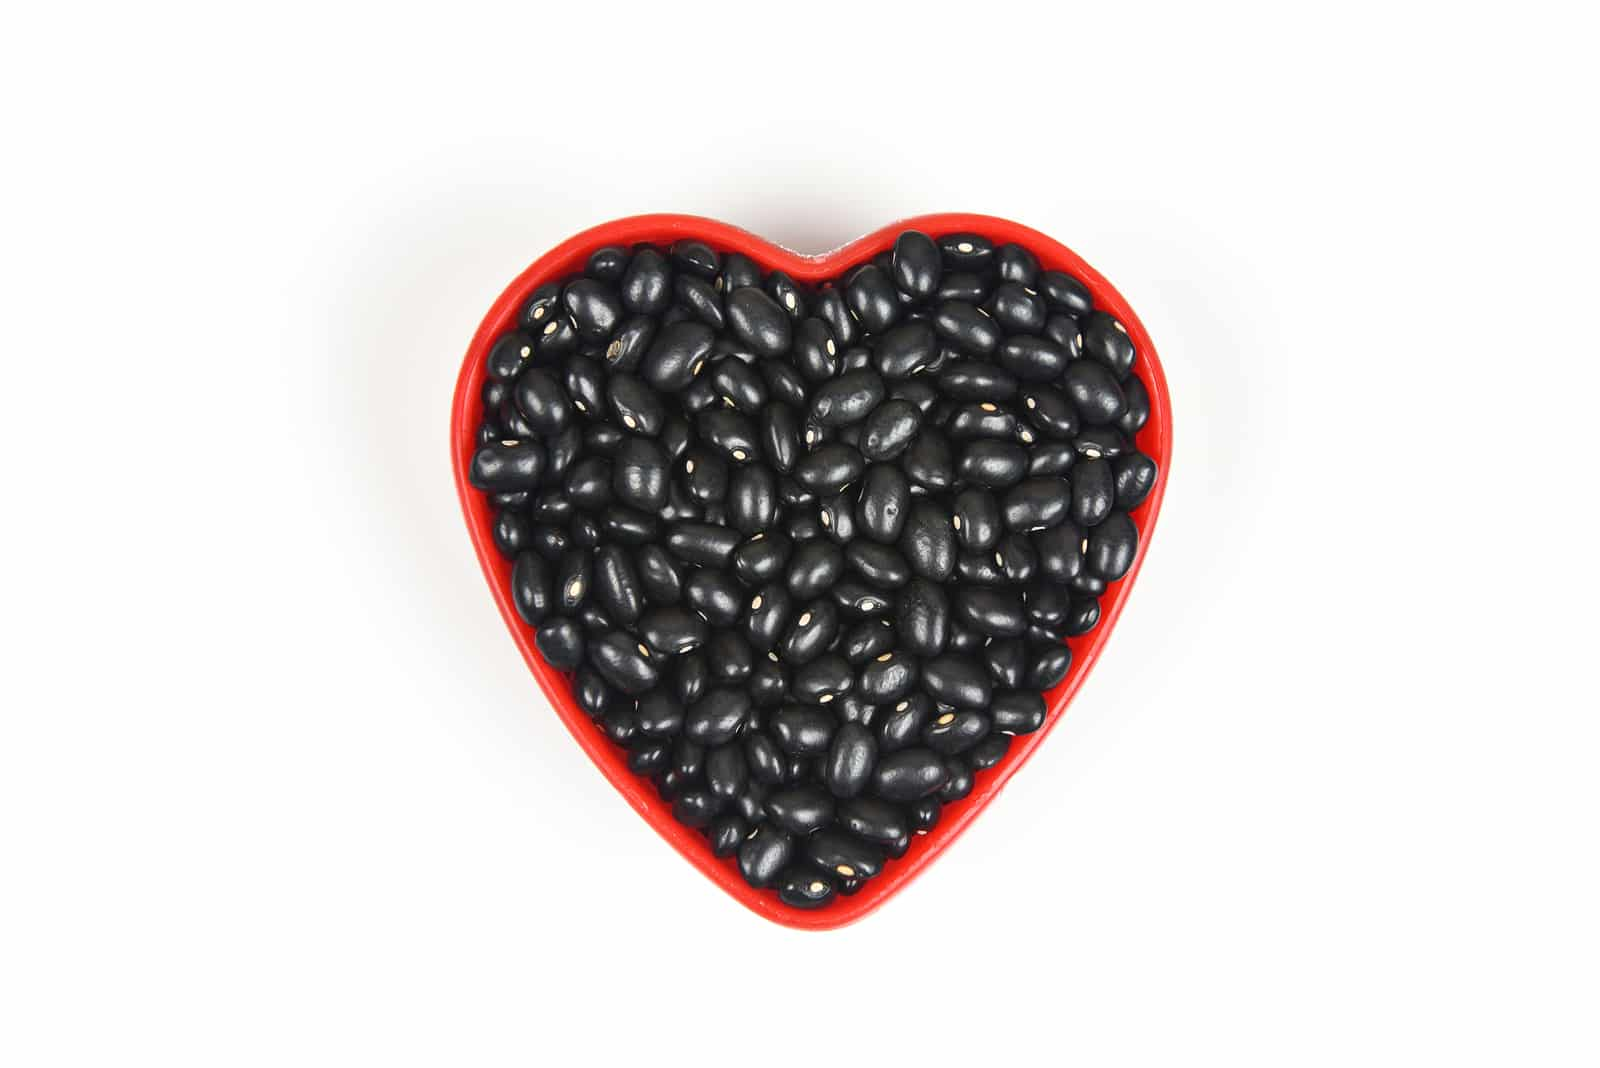 Black beans in red heart plate